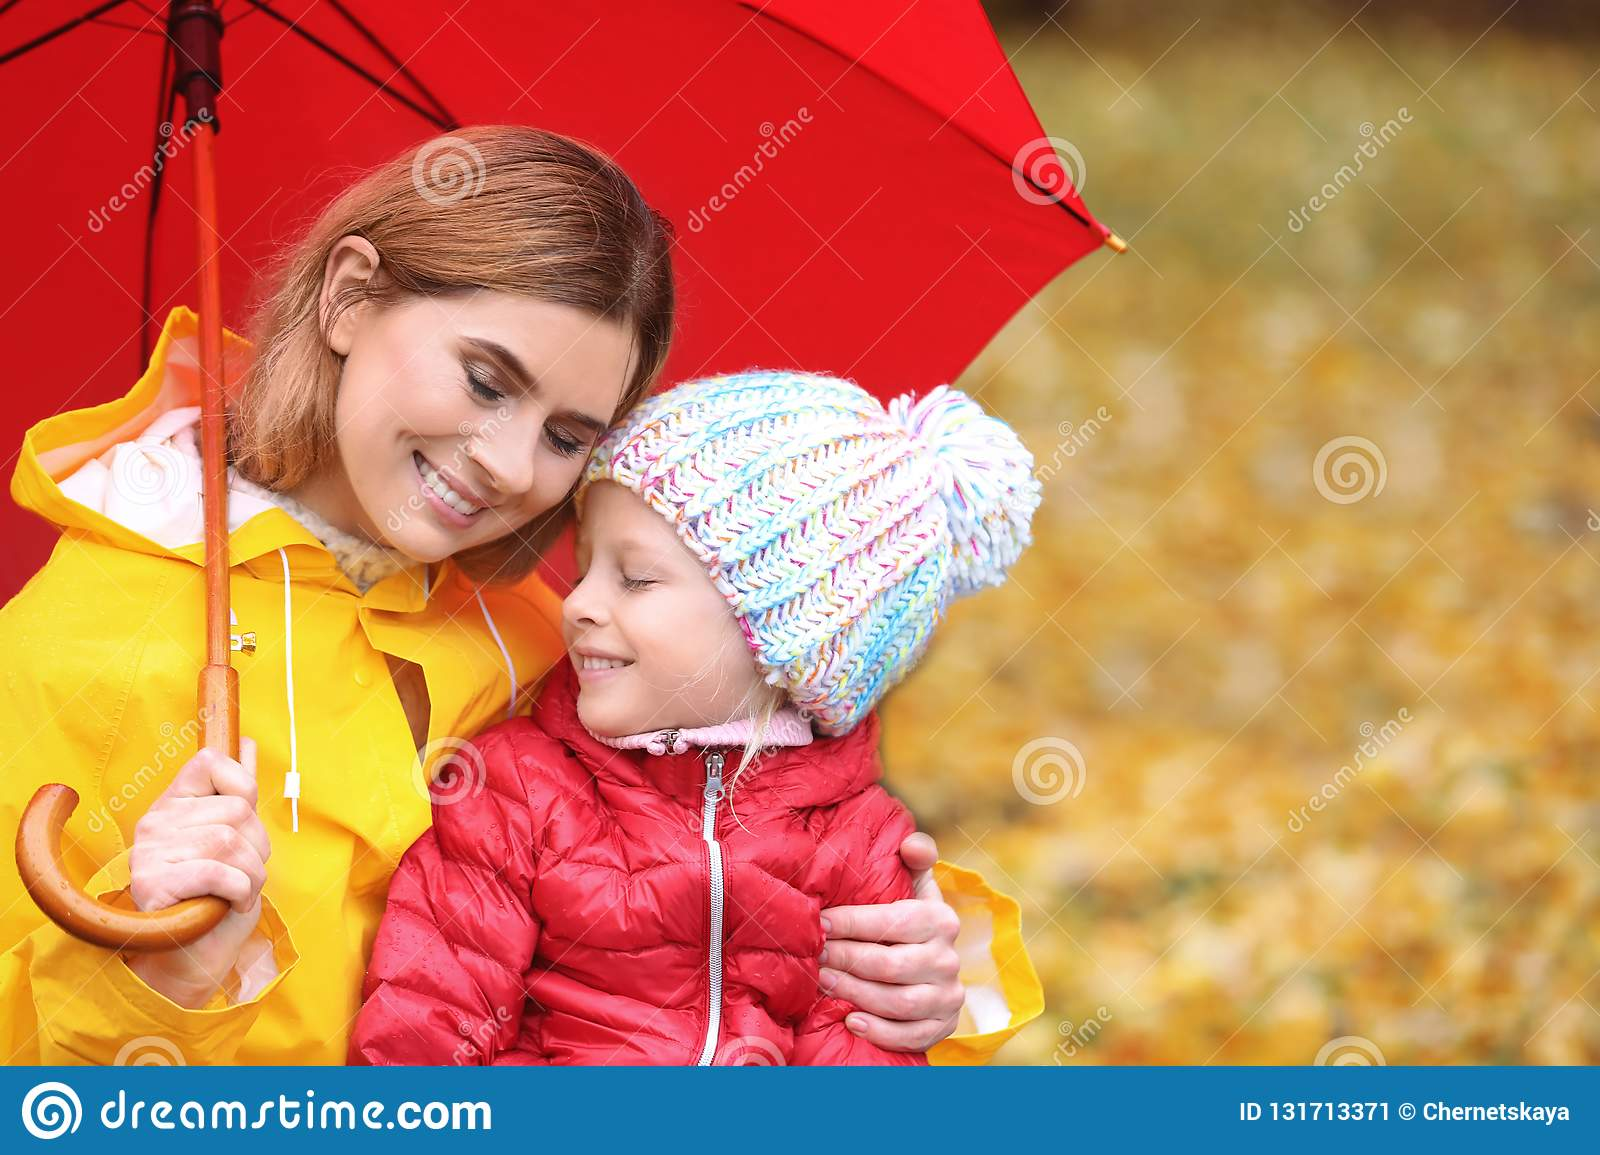 Mother and daughter with umbrella in autumn park